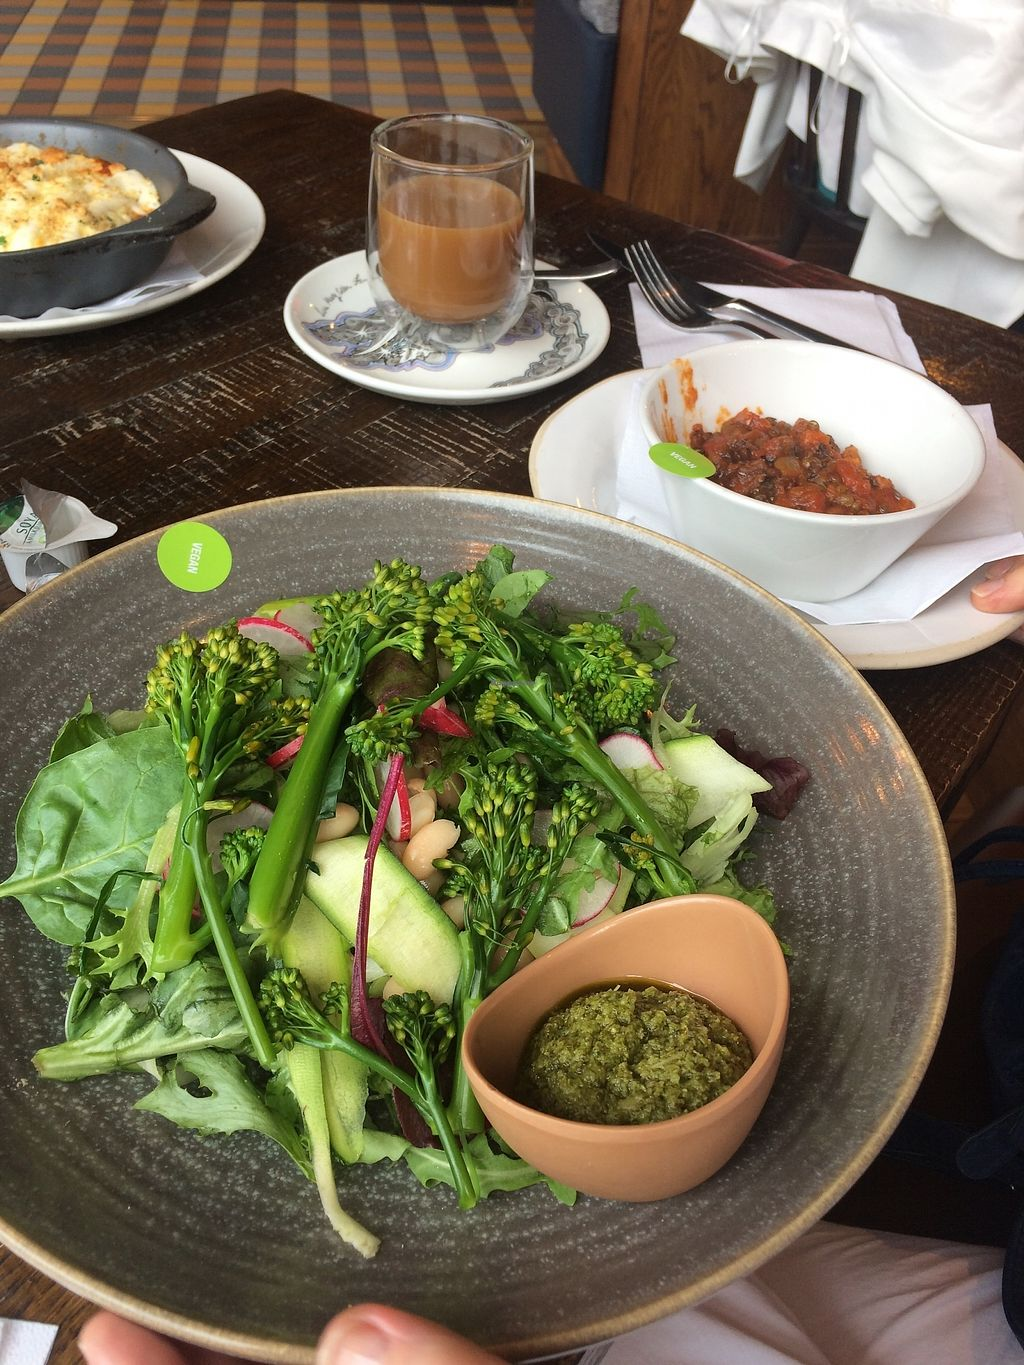 """Photo of Zizzi - Birstall  by <a href=""""/members/profile/Hoggy"""">Hoggy</a> <br/>Vegan 'Green Goddess Salad' with side of vegan 'Lentil Ragu'.  Also featuring Soya milk Coffee <br/> July 23, 2017  - <a href='/contact/abuse/image/77469/283822'>Report</a>"""